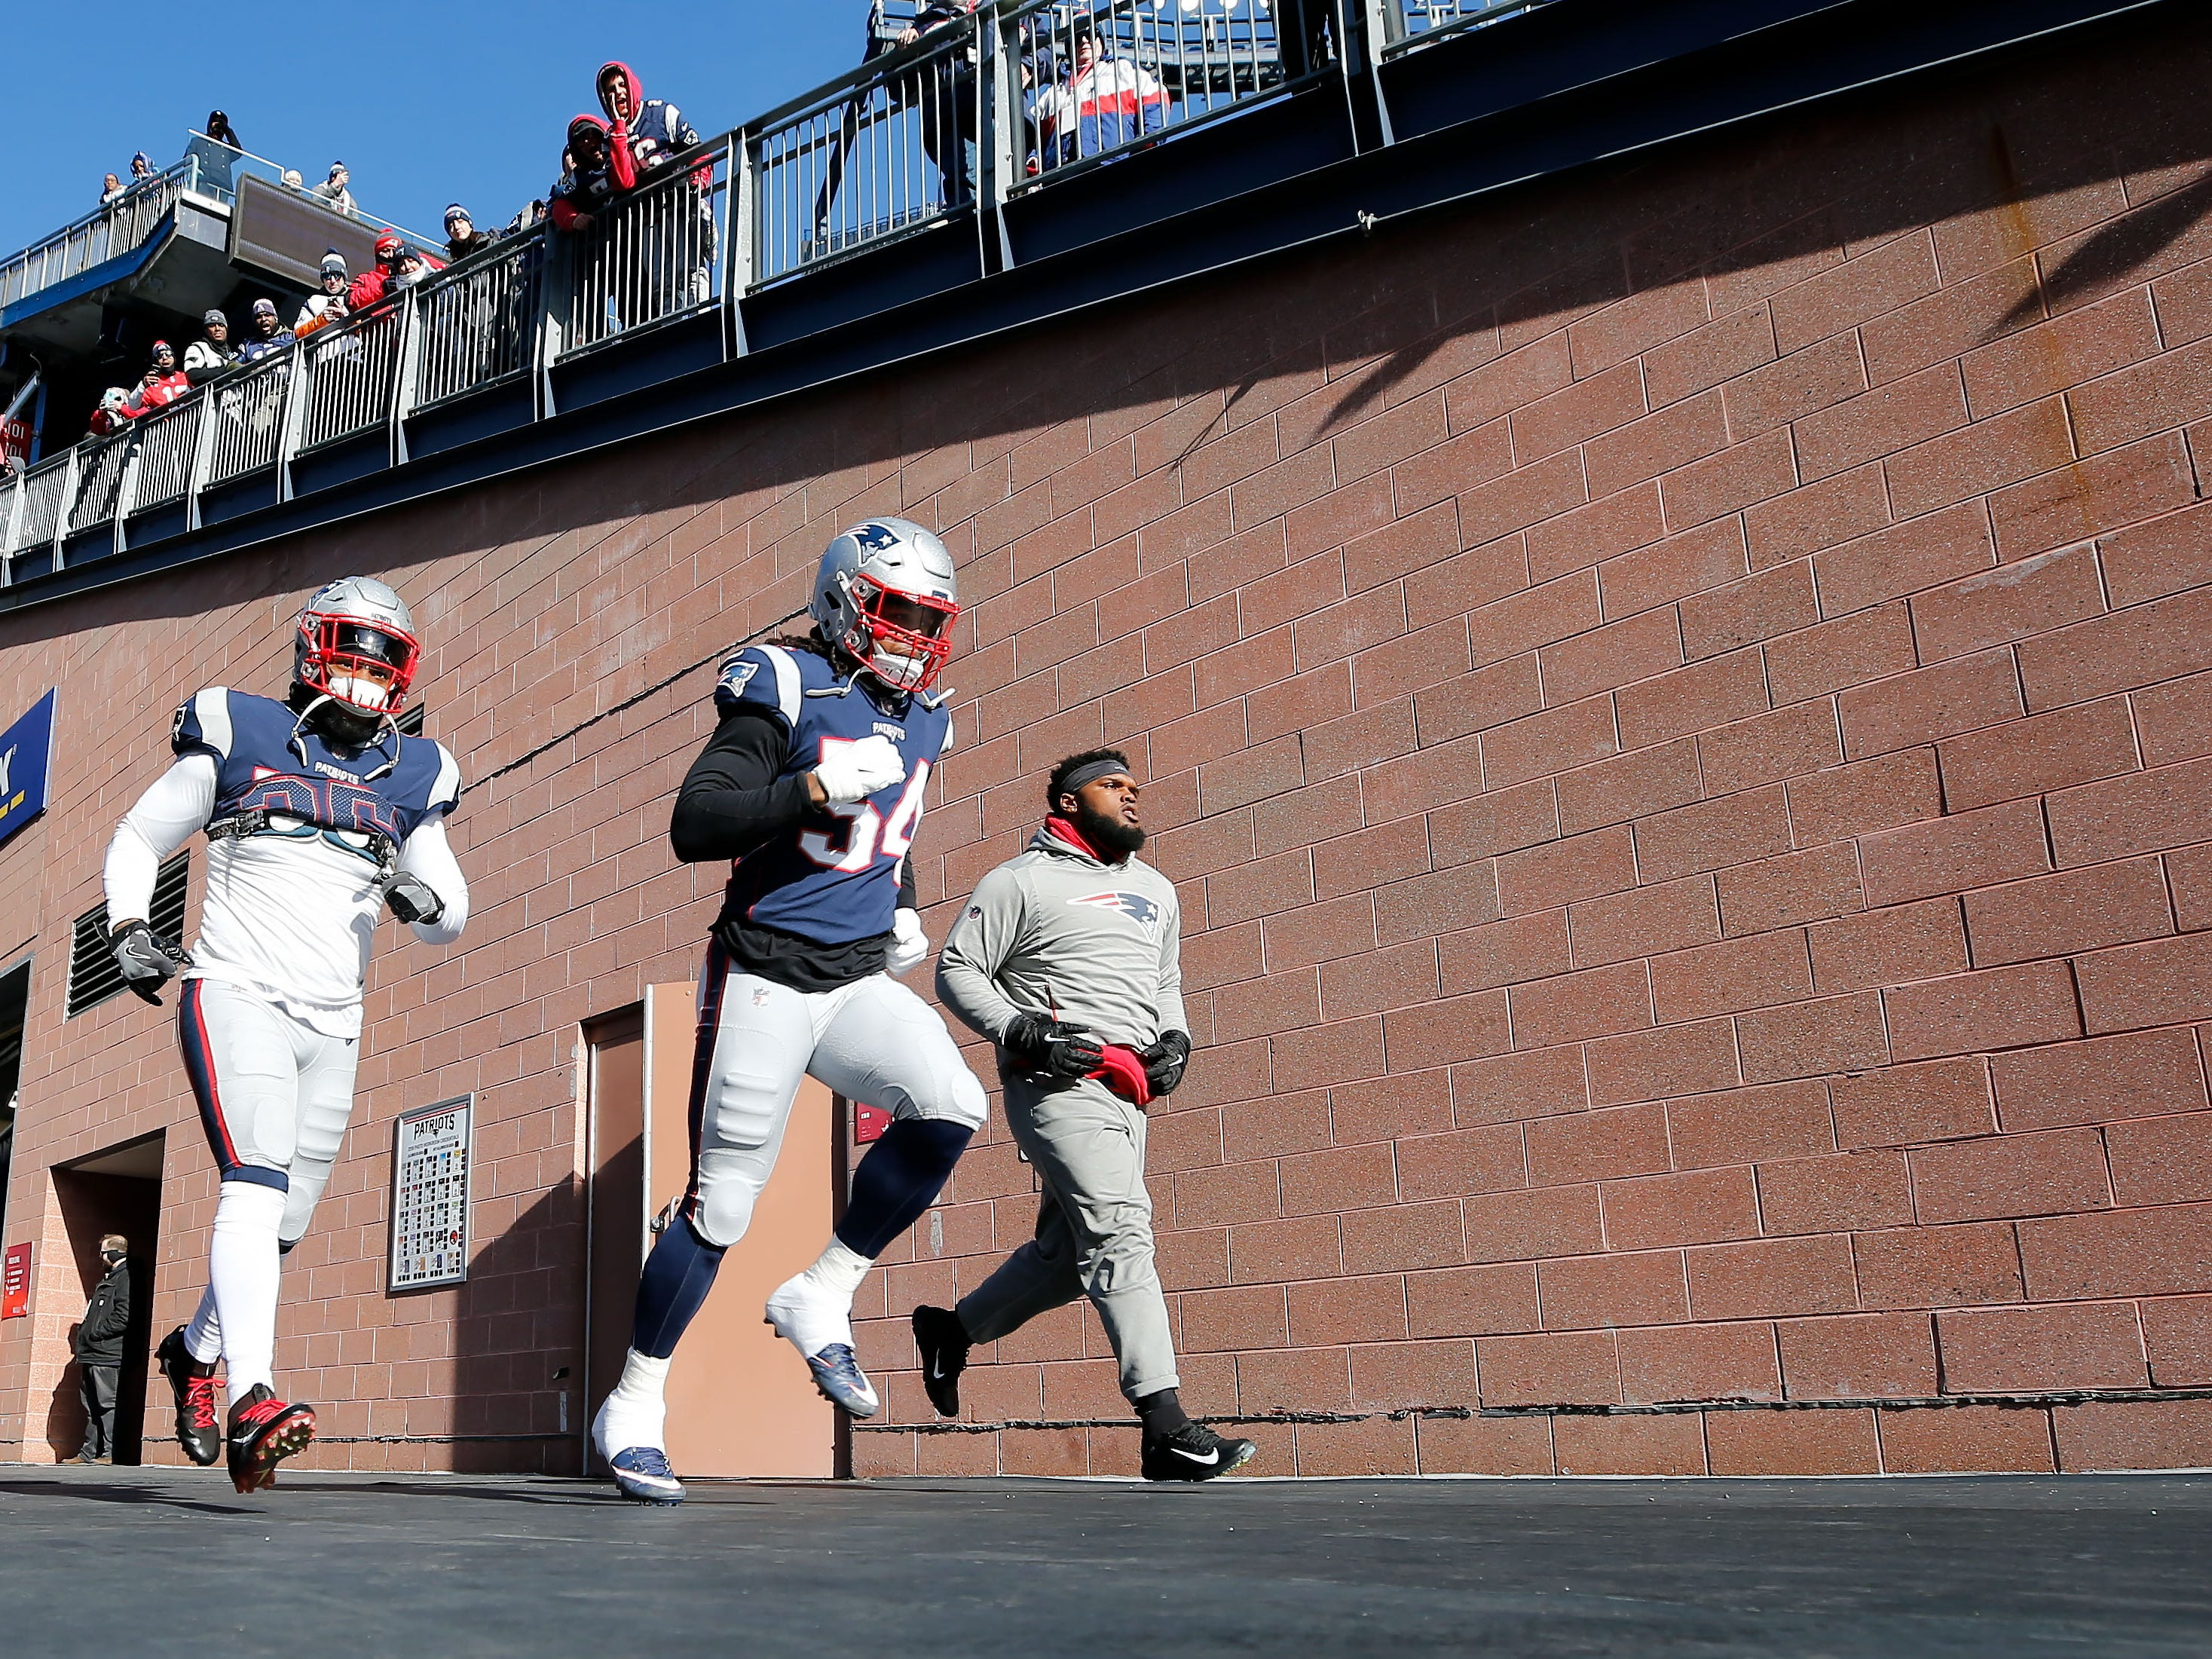 New England Patriots outside linebacker Dont'a Hightower (54) and defensive back Keion Crossen (35) walk onto the field for warmups before a game against the Los Angeles Chargers in an AFC Divisional playoff football game at Gillette Stadium.